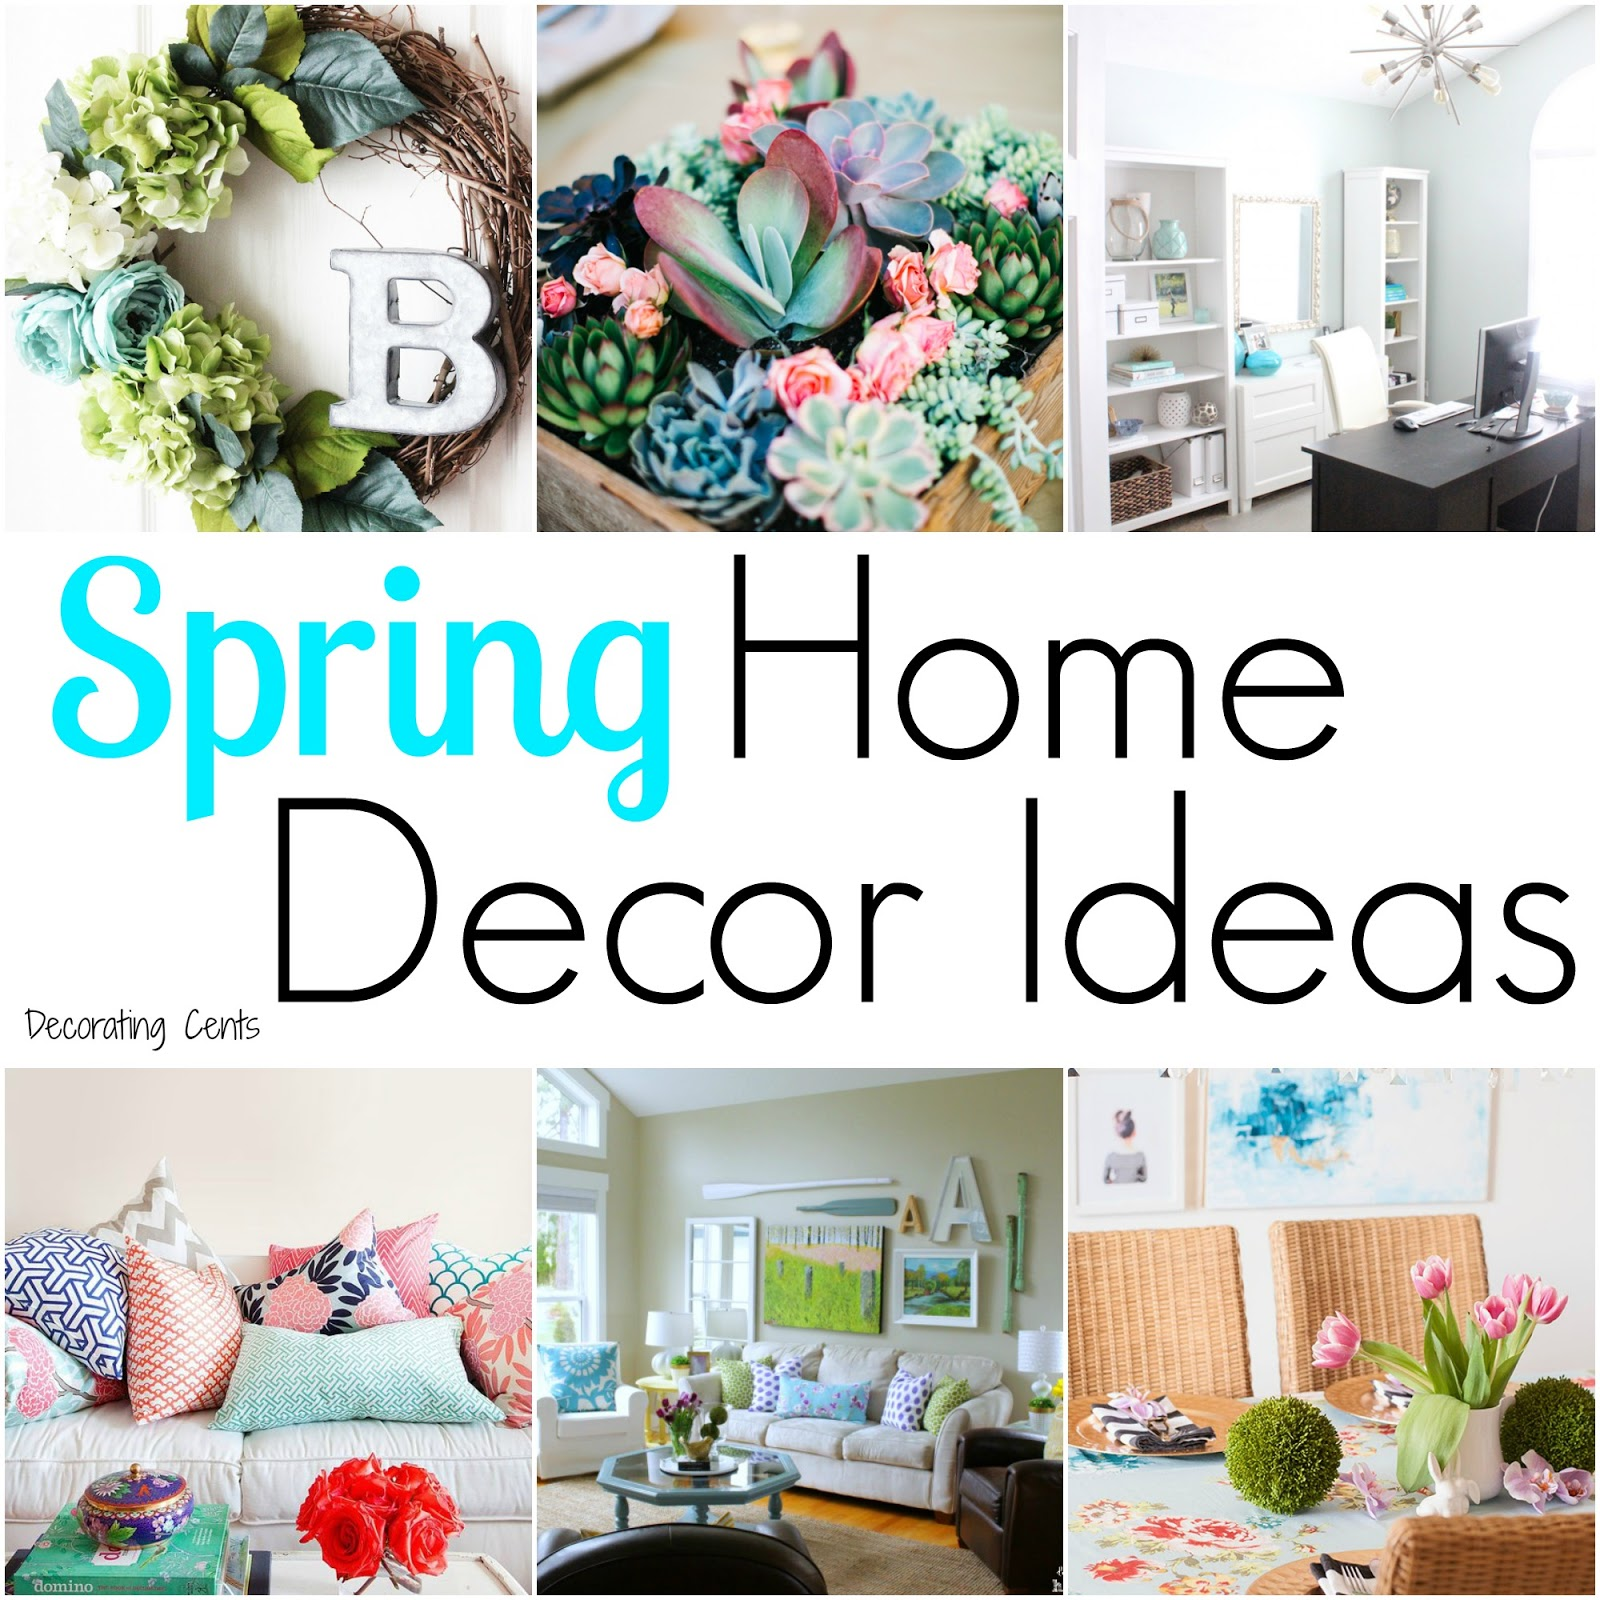 Attractive Spring Home Decor Ideas Part - 14: Spring Home Decor Ideas